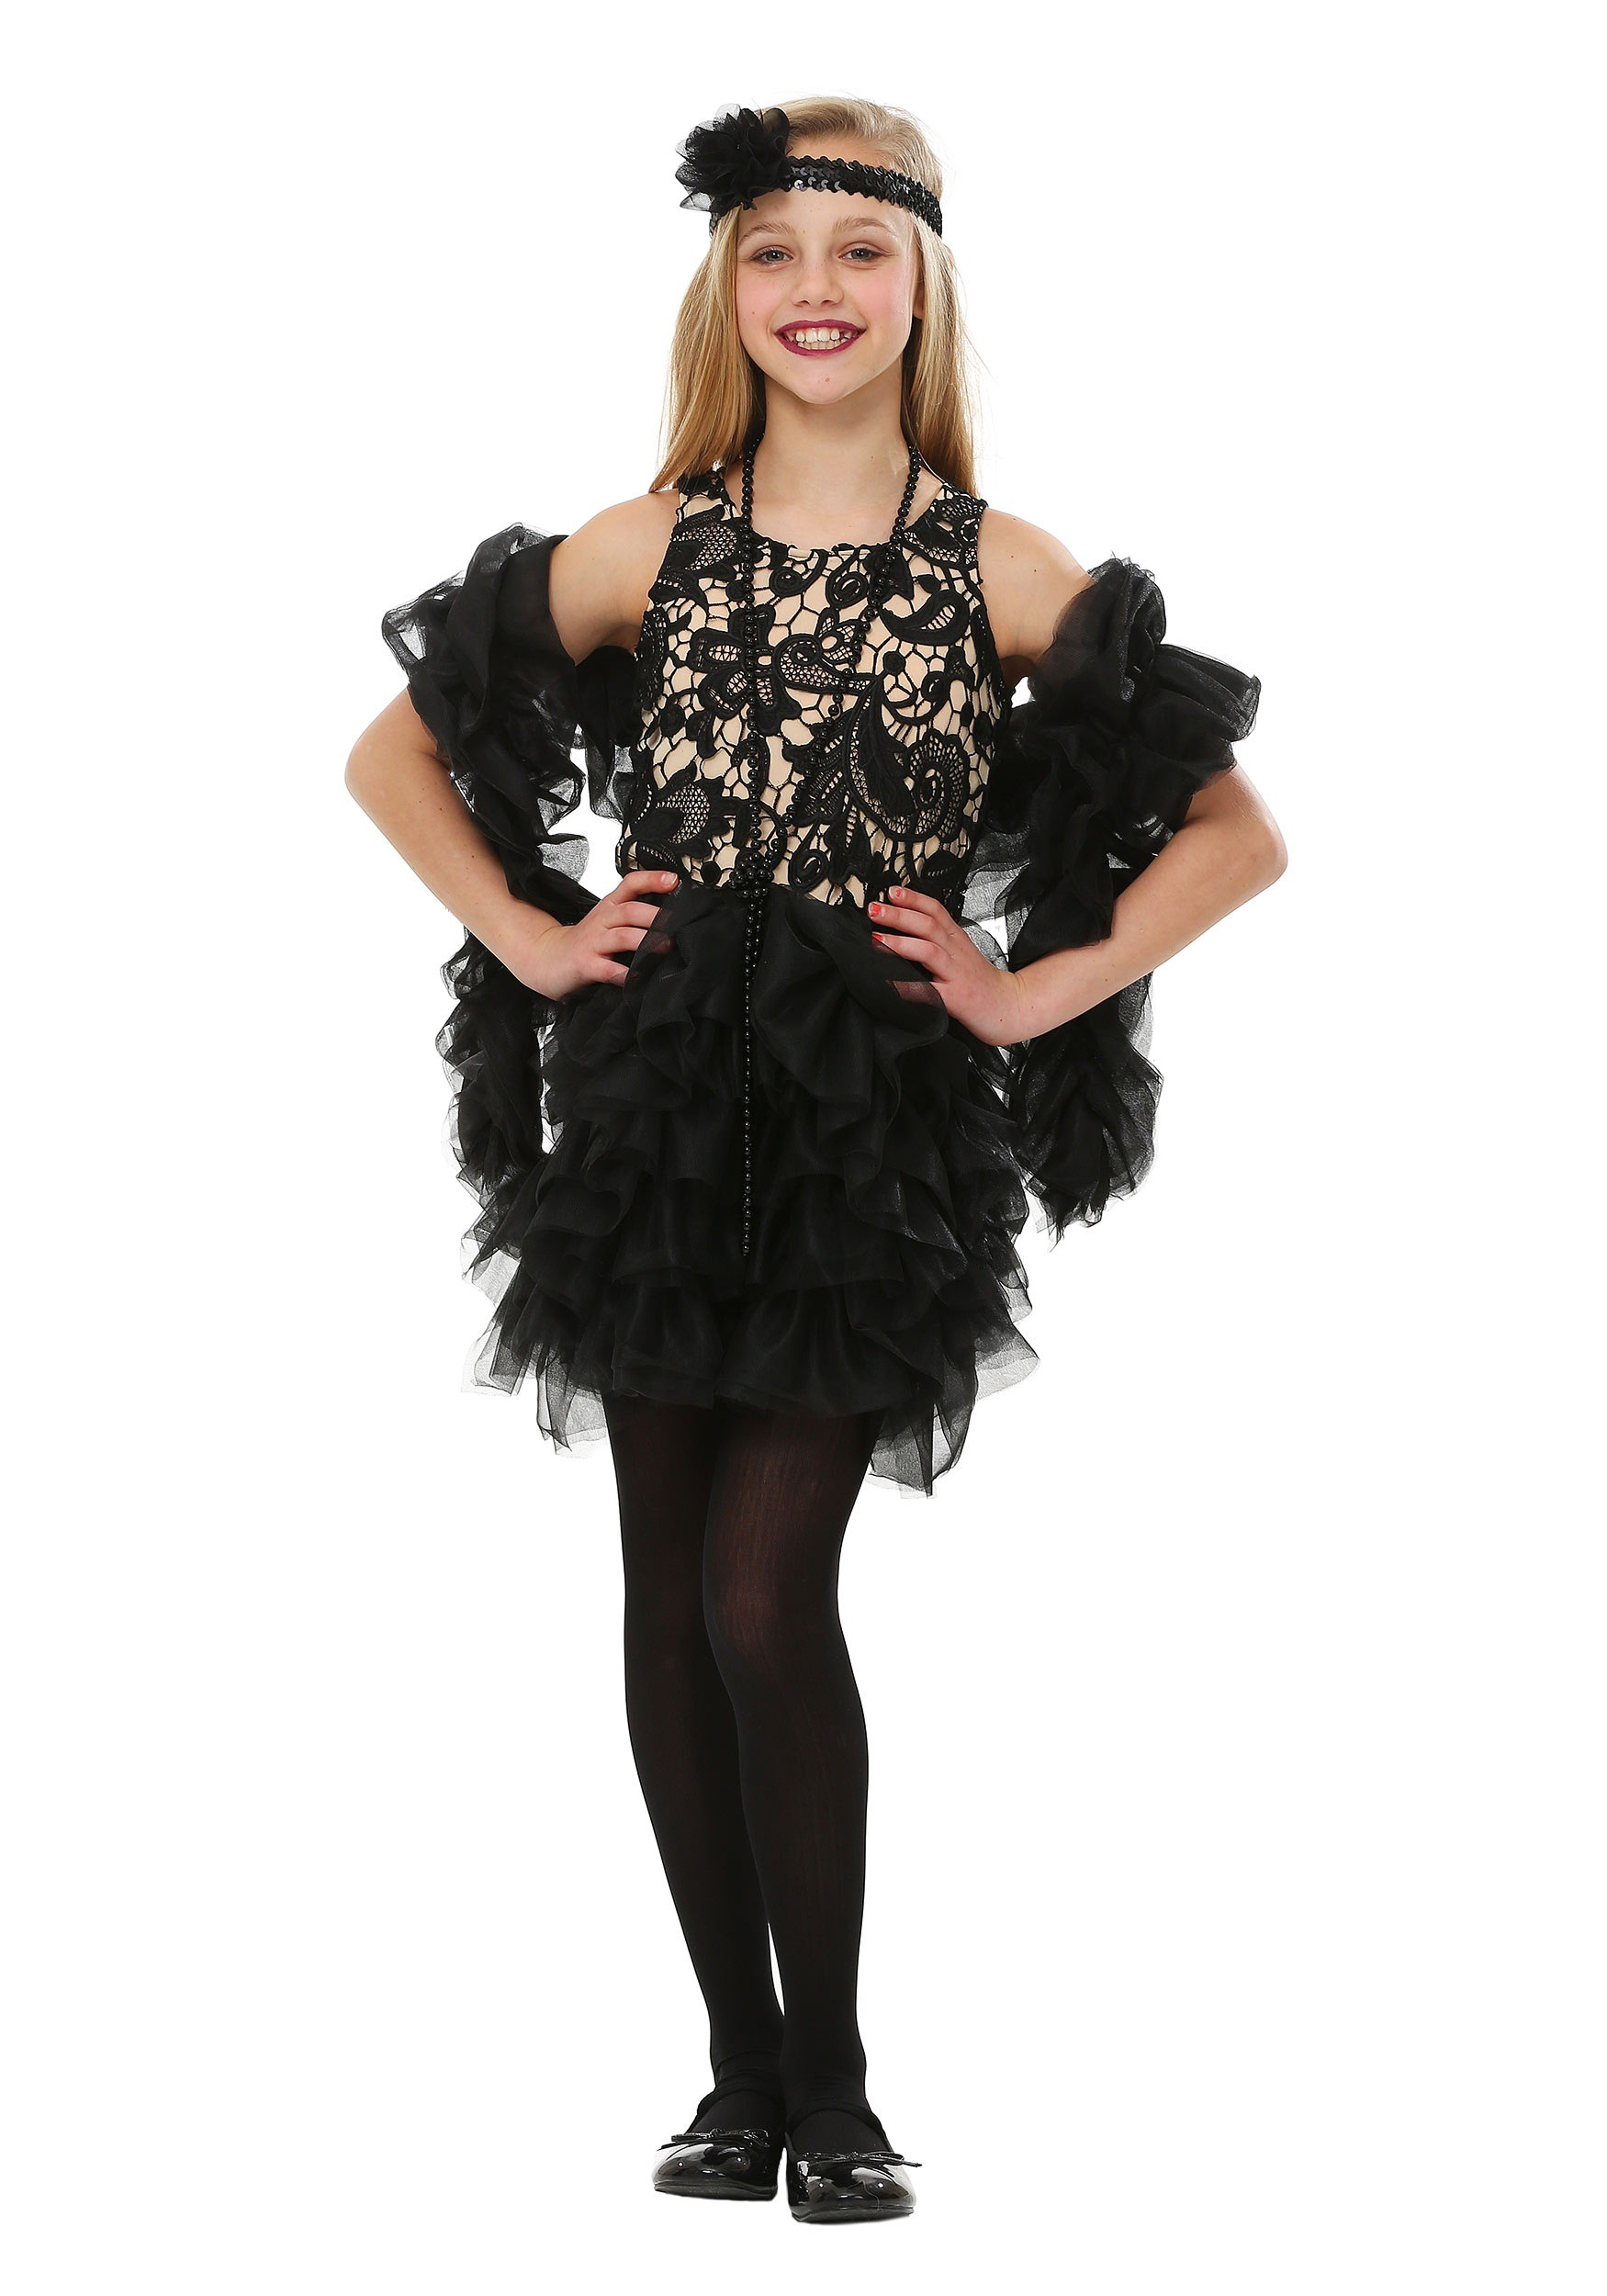 Girls Halloween Costumes - HalloweenCostumes.com